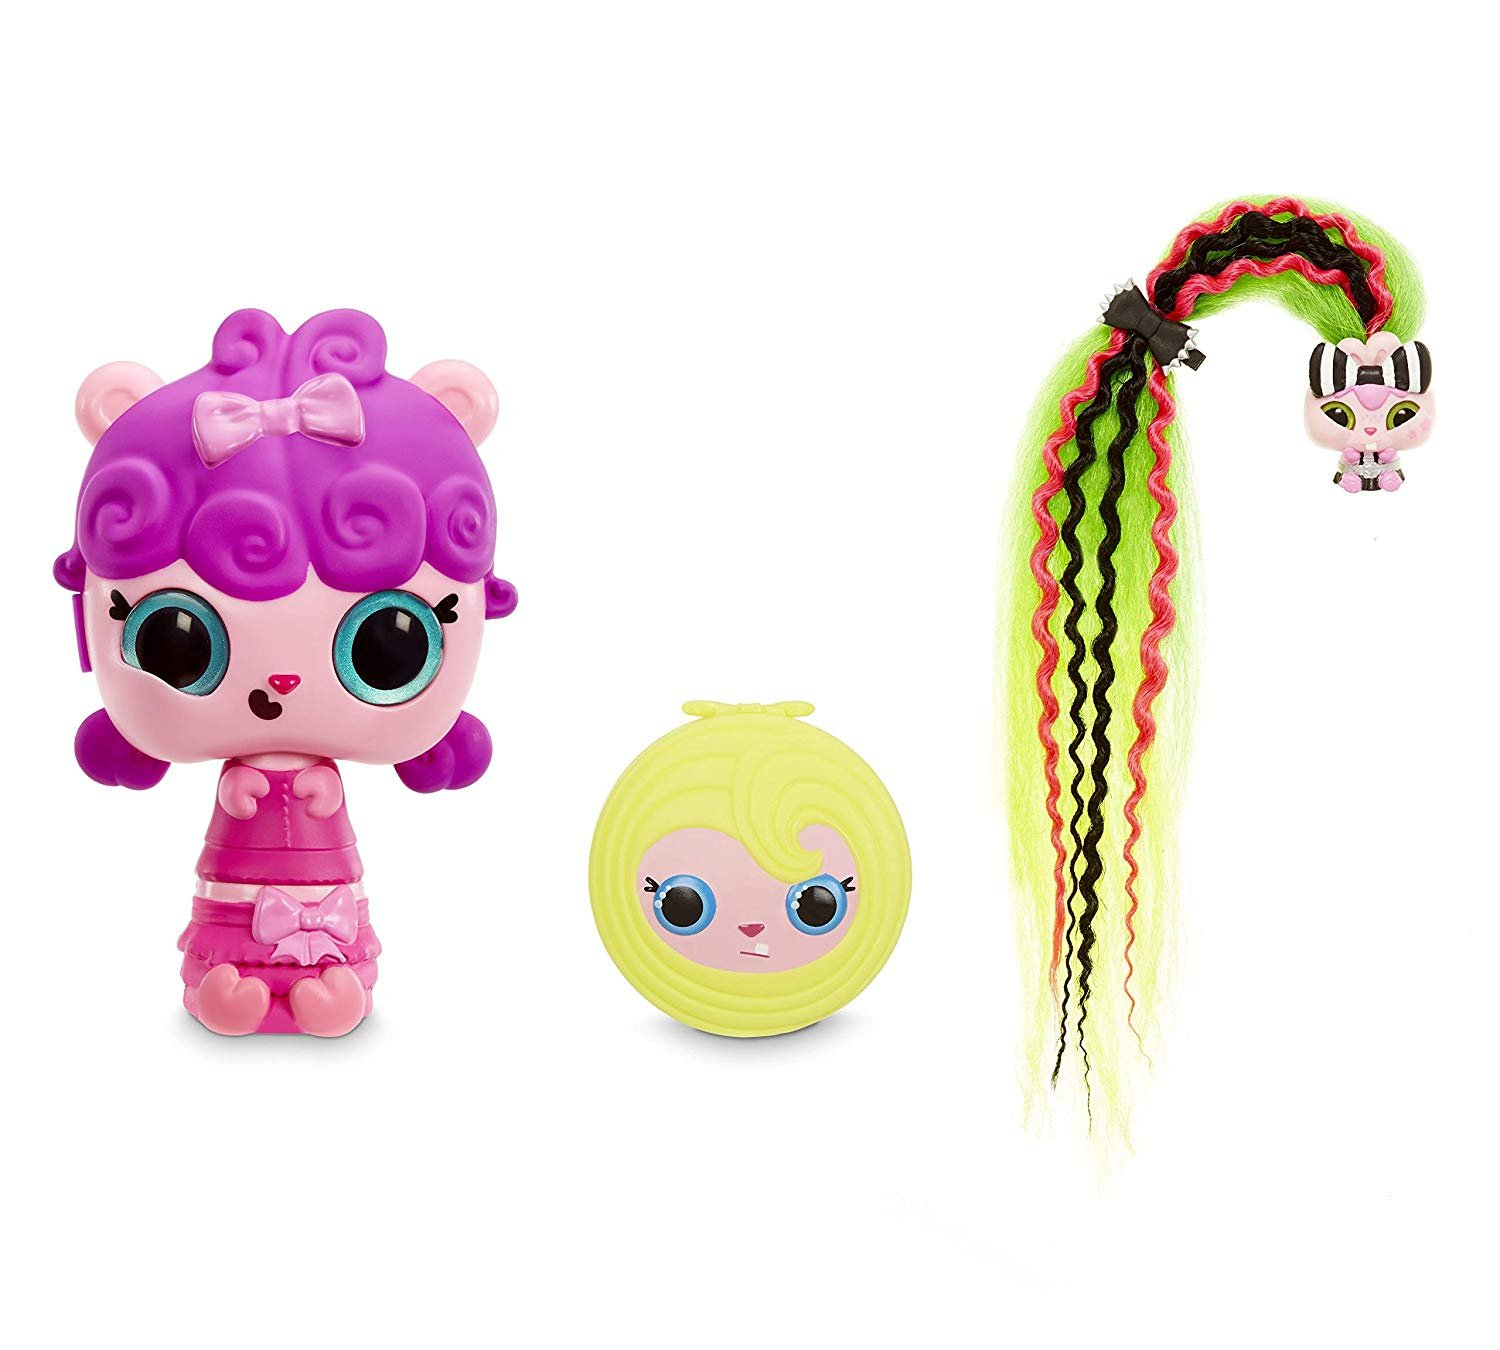 Pop Pop Hair Surprise Wave 1 Pop Pop Hair Surprise 3-In-1 POP Pets with Long, Brushable Hair